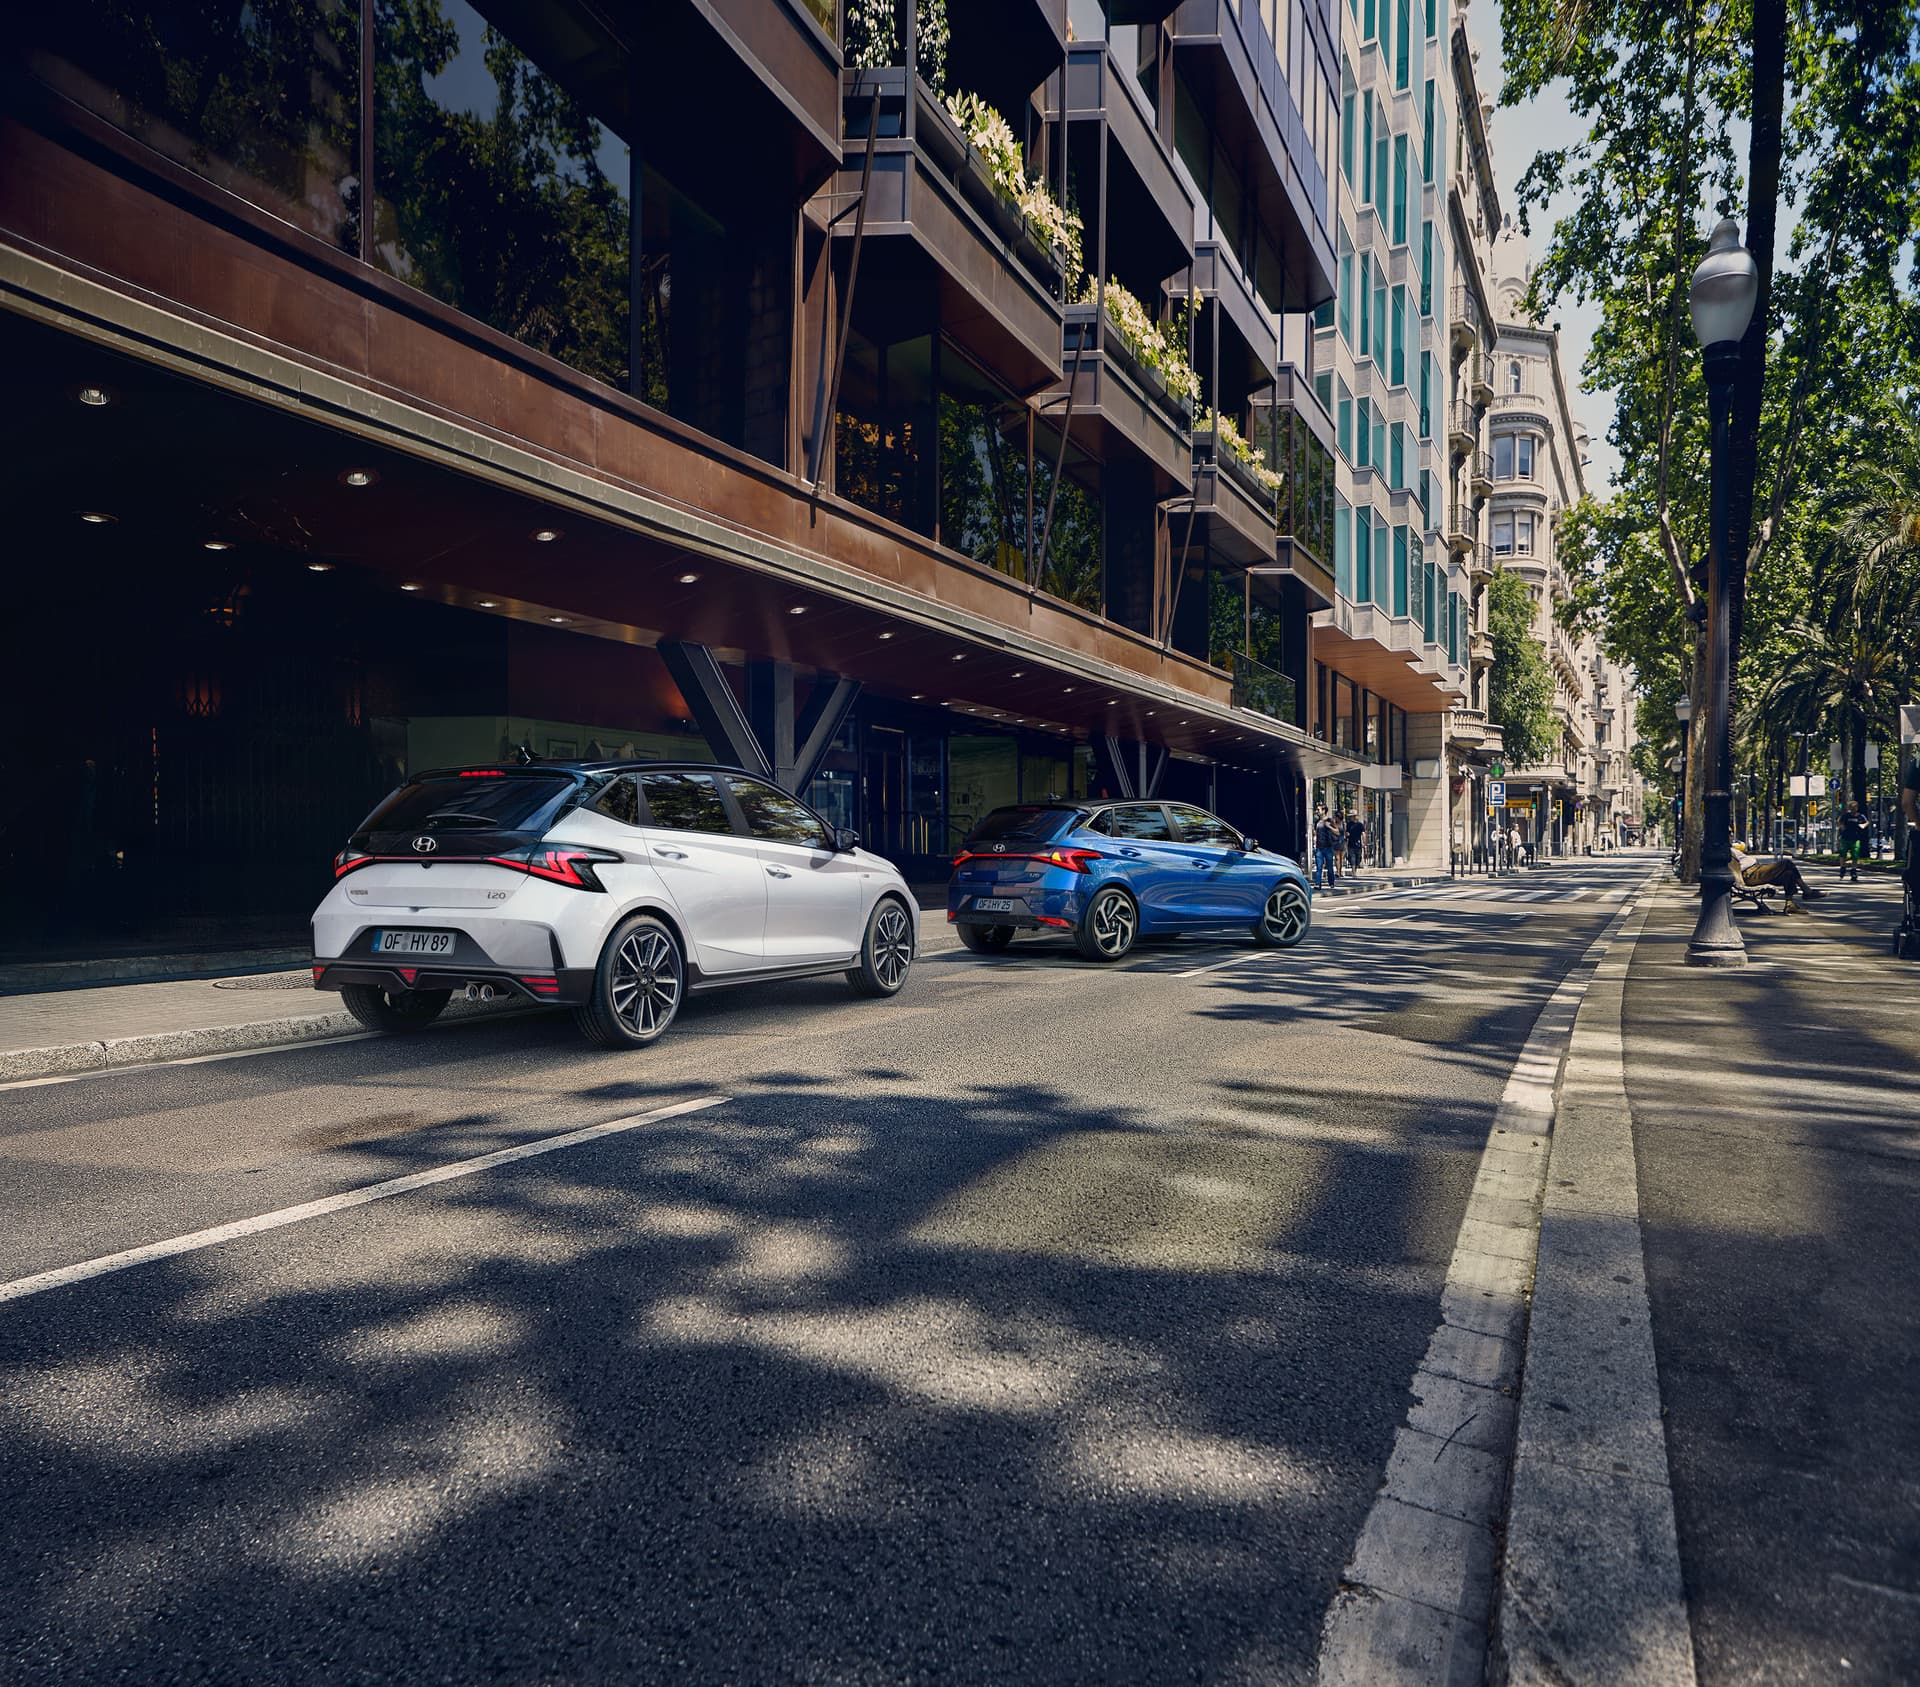 The all-new Hyundai i20 N Line parked next to large buildings in an otherwise empty street